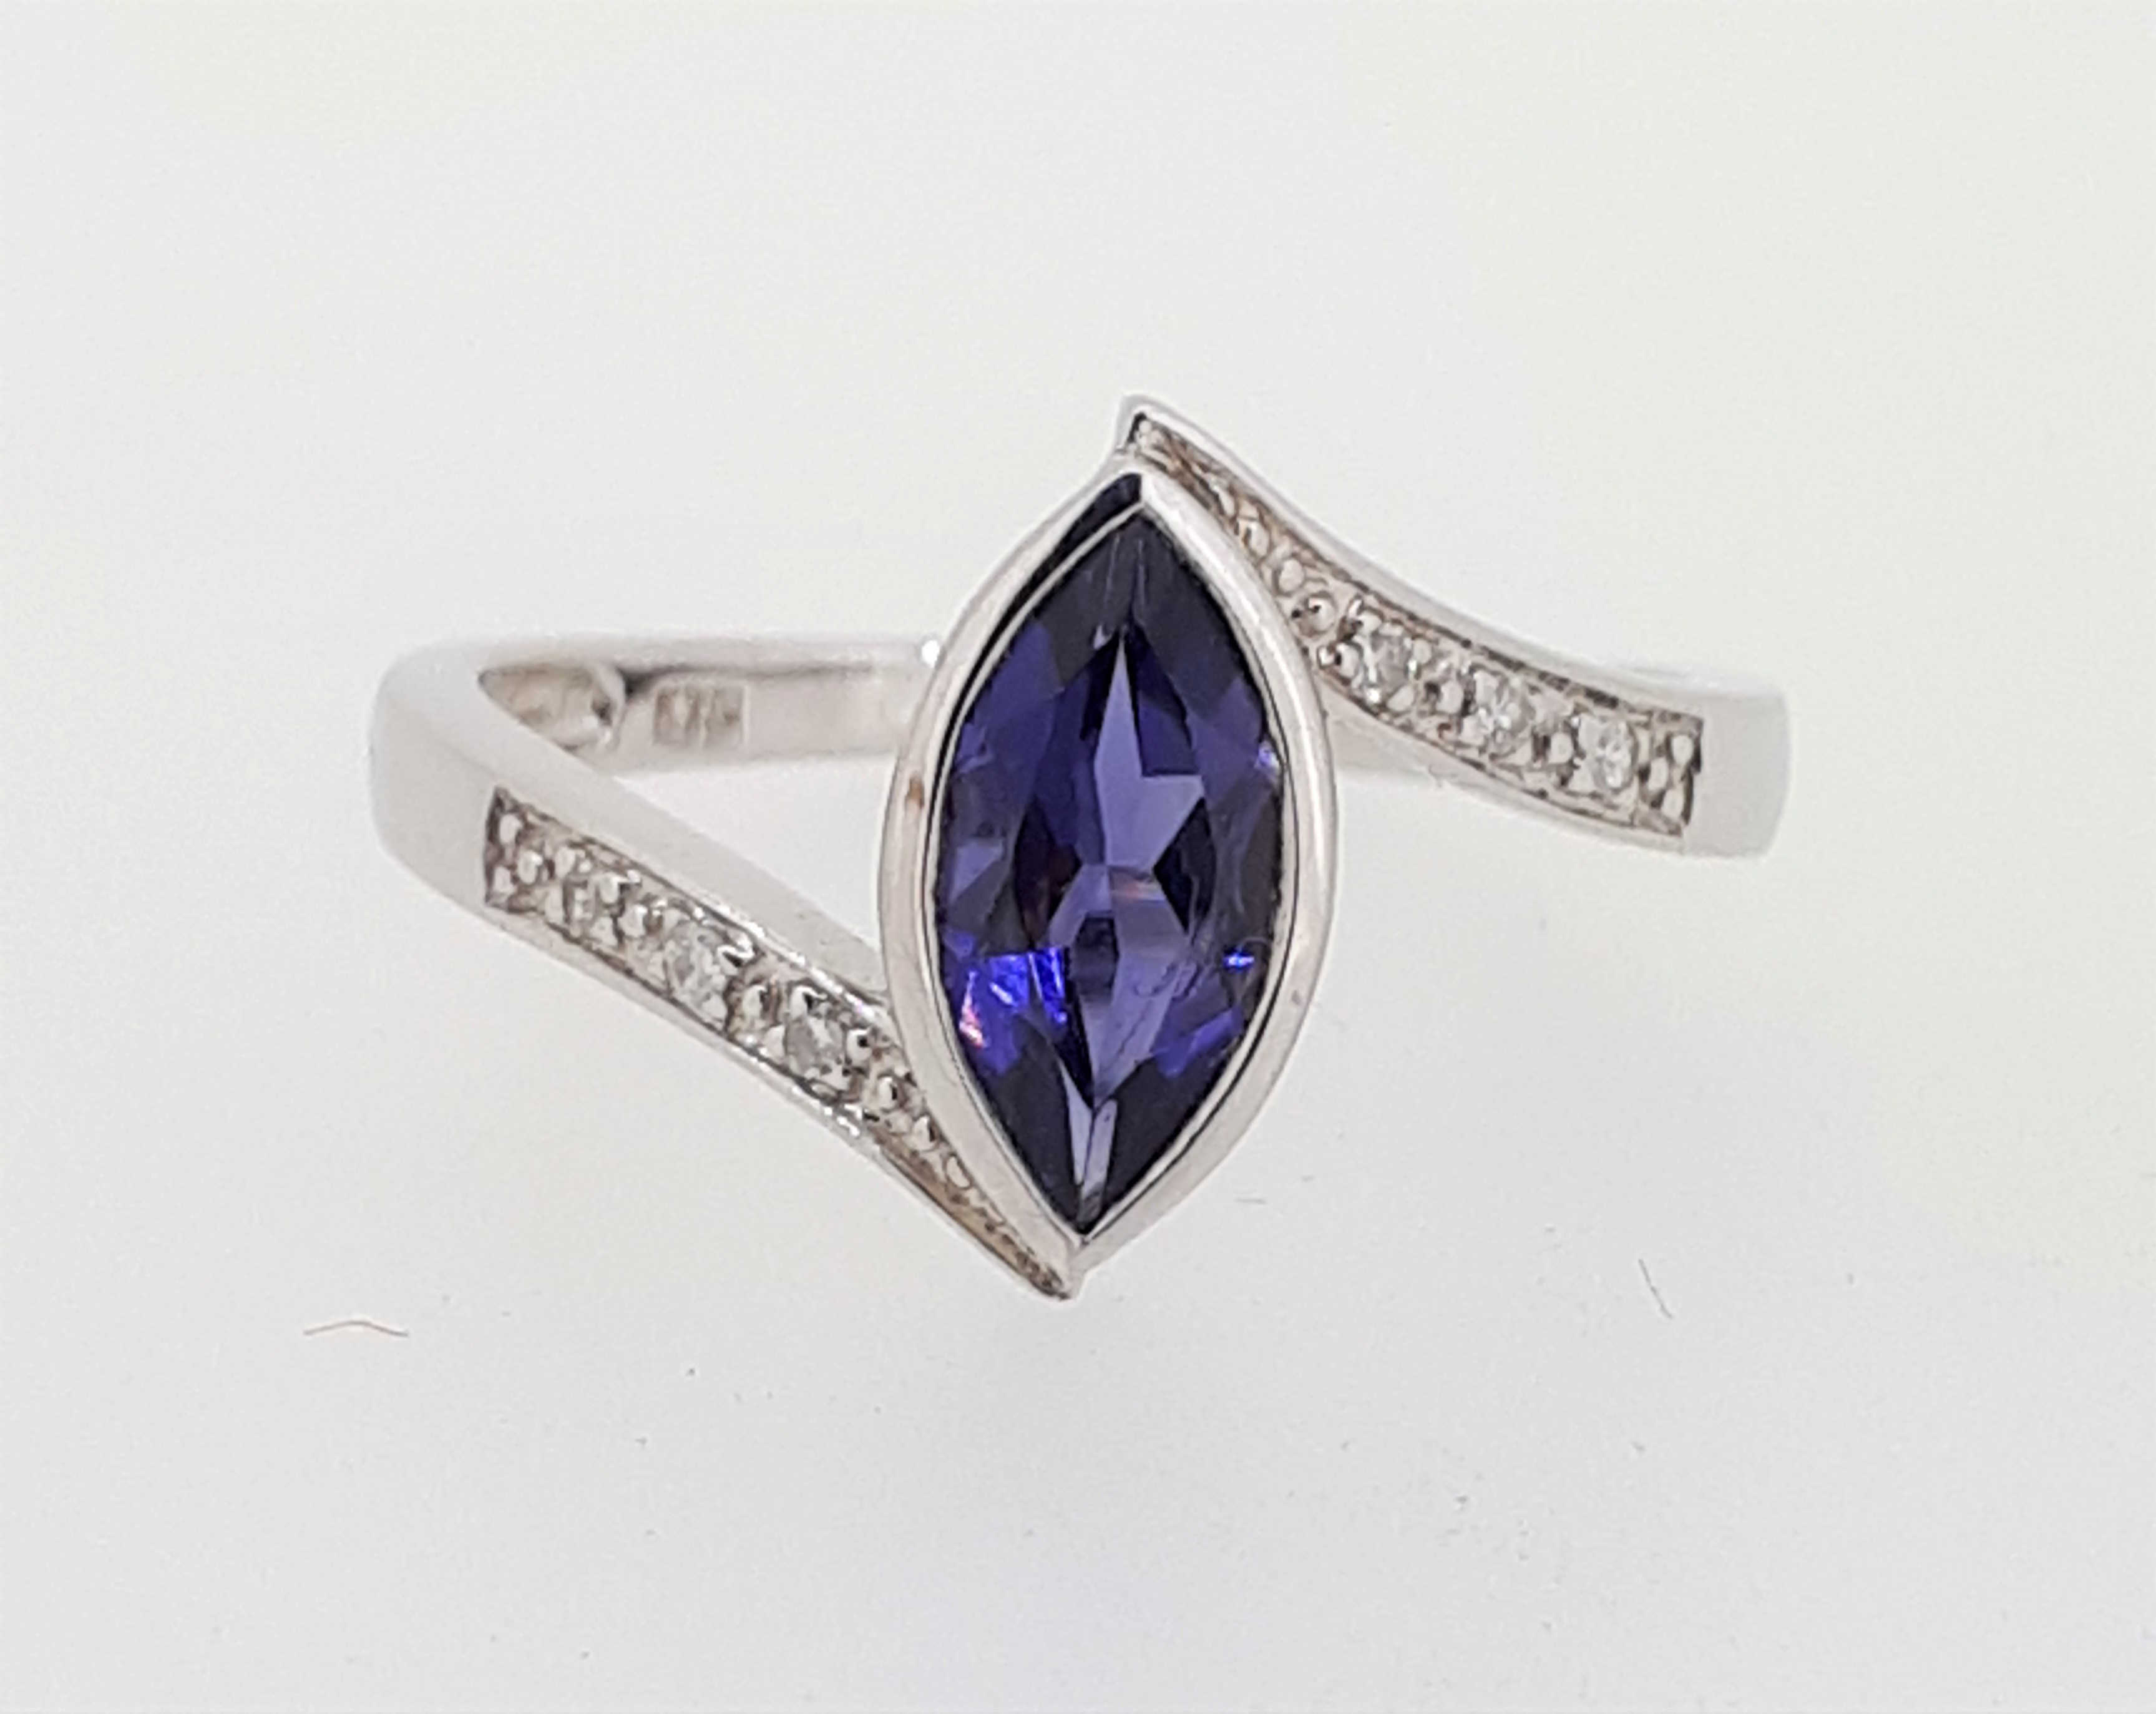 9ct (375) White Gold Diamond & Marquise Iolite Crossover Ring - Image 3 of 5